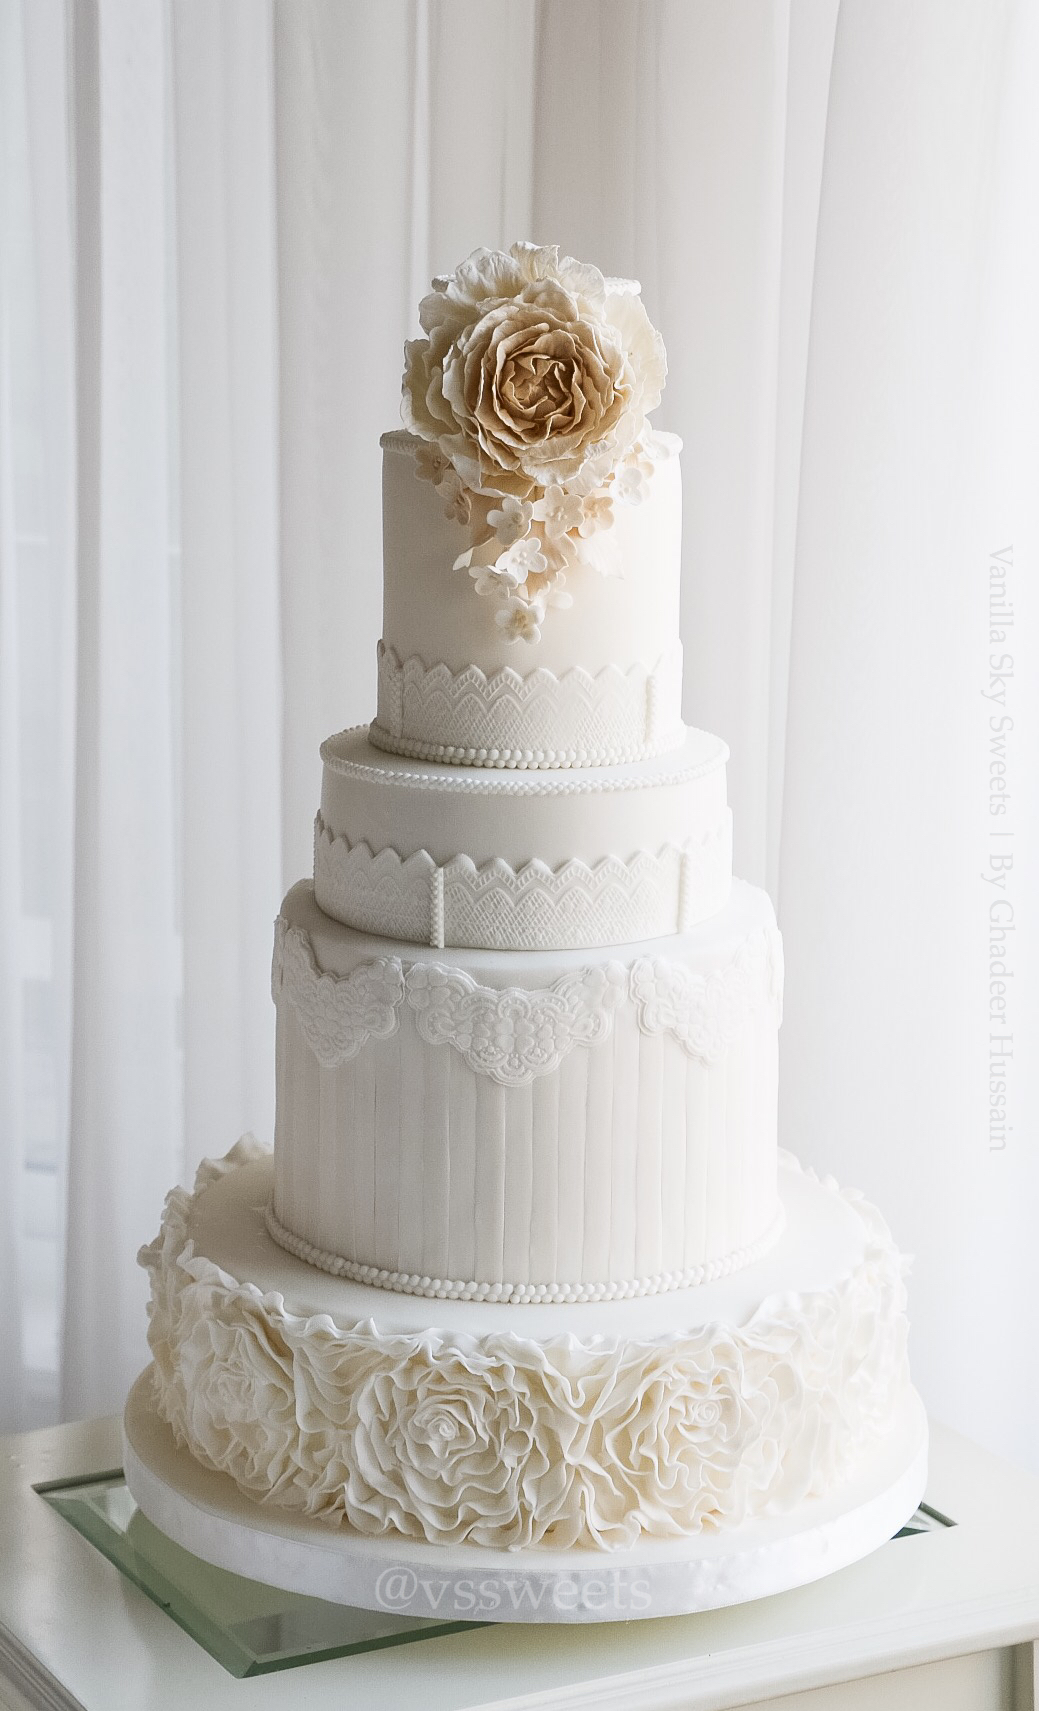 White and Ivory Rosette Ruffle fondant Wedding